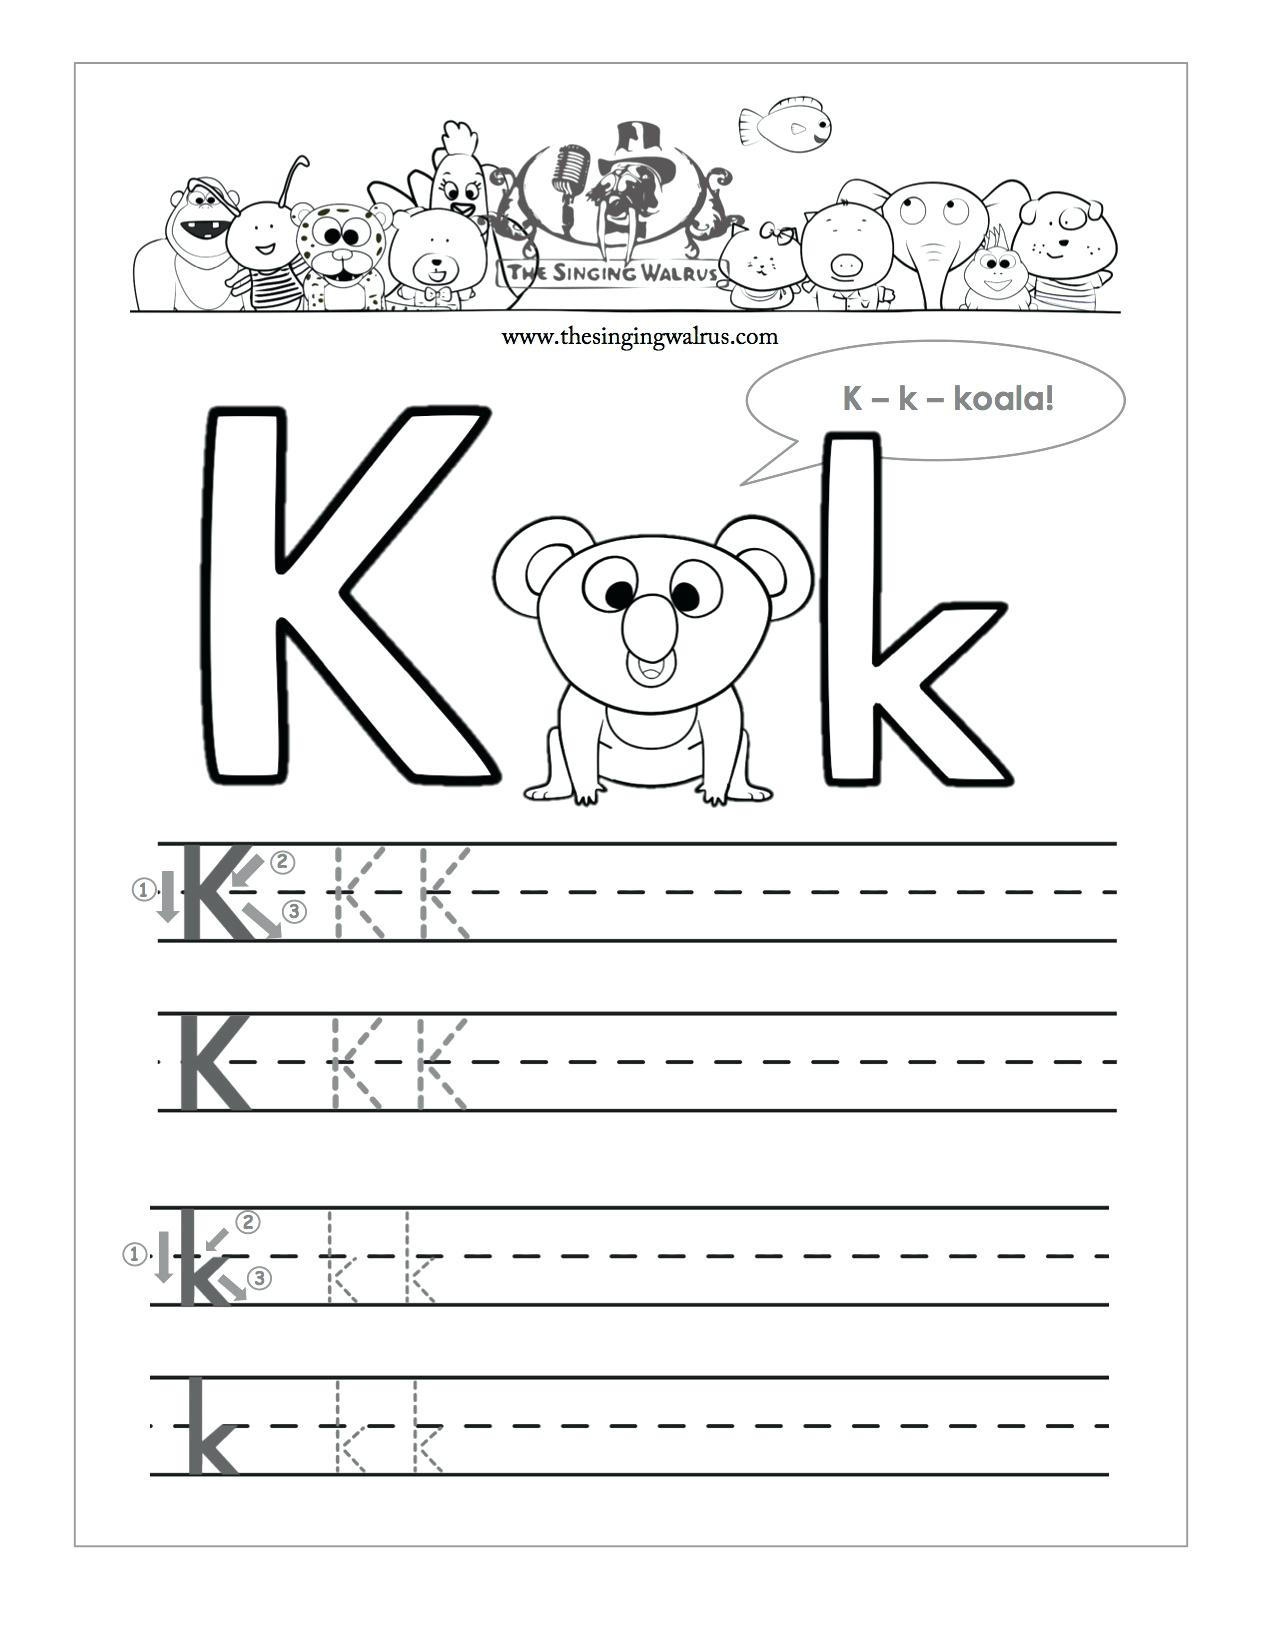 Alphabet Writing Practice Sheets Pdf Alphabet Writing Worksheets For | Hindi Writing Worksheets Printable